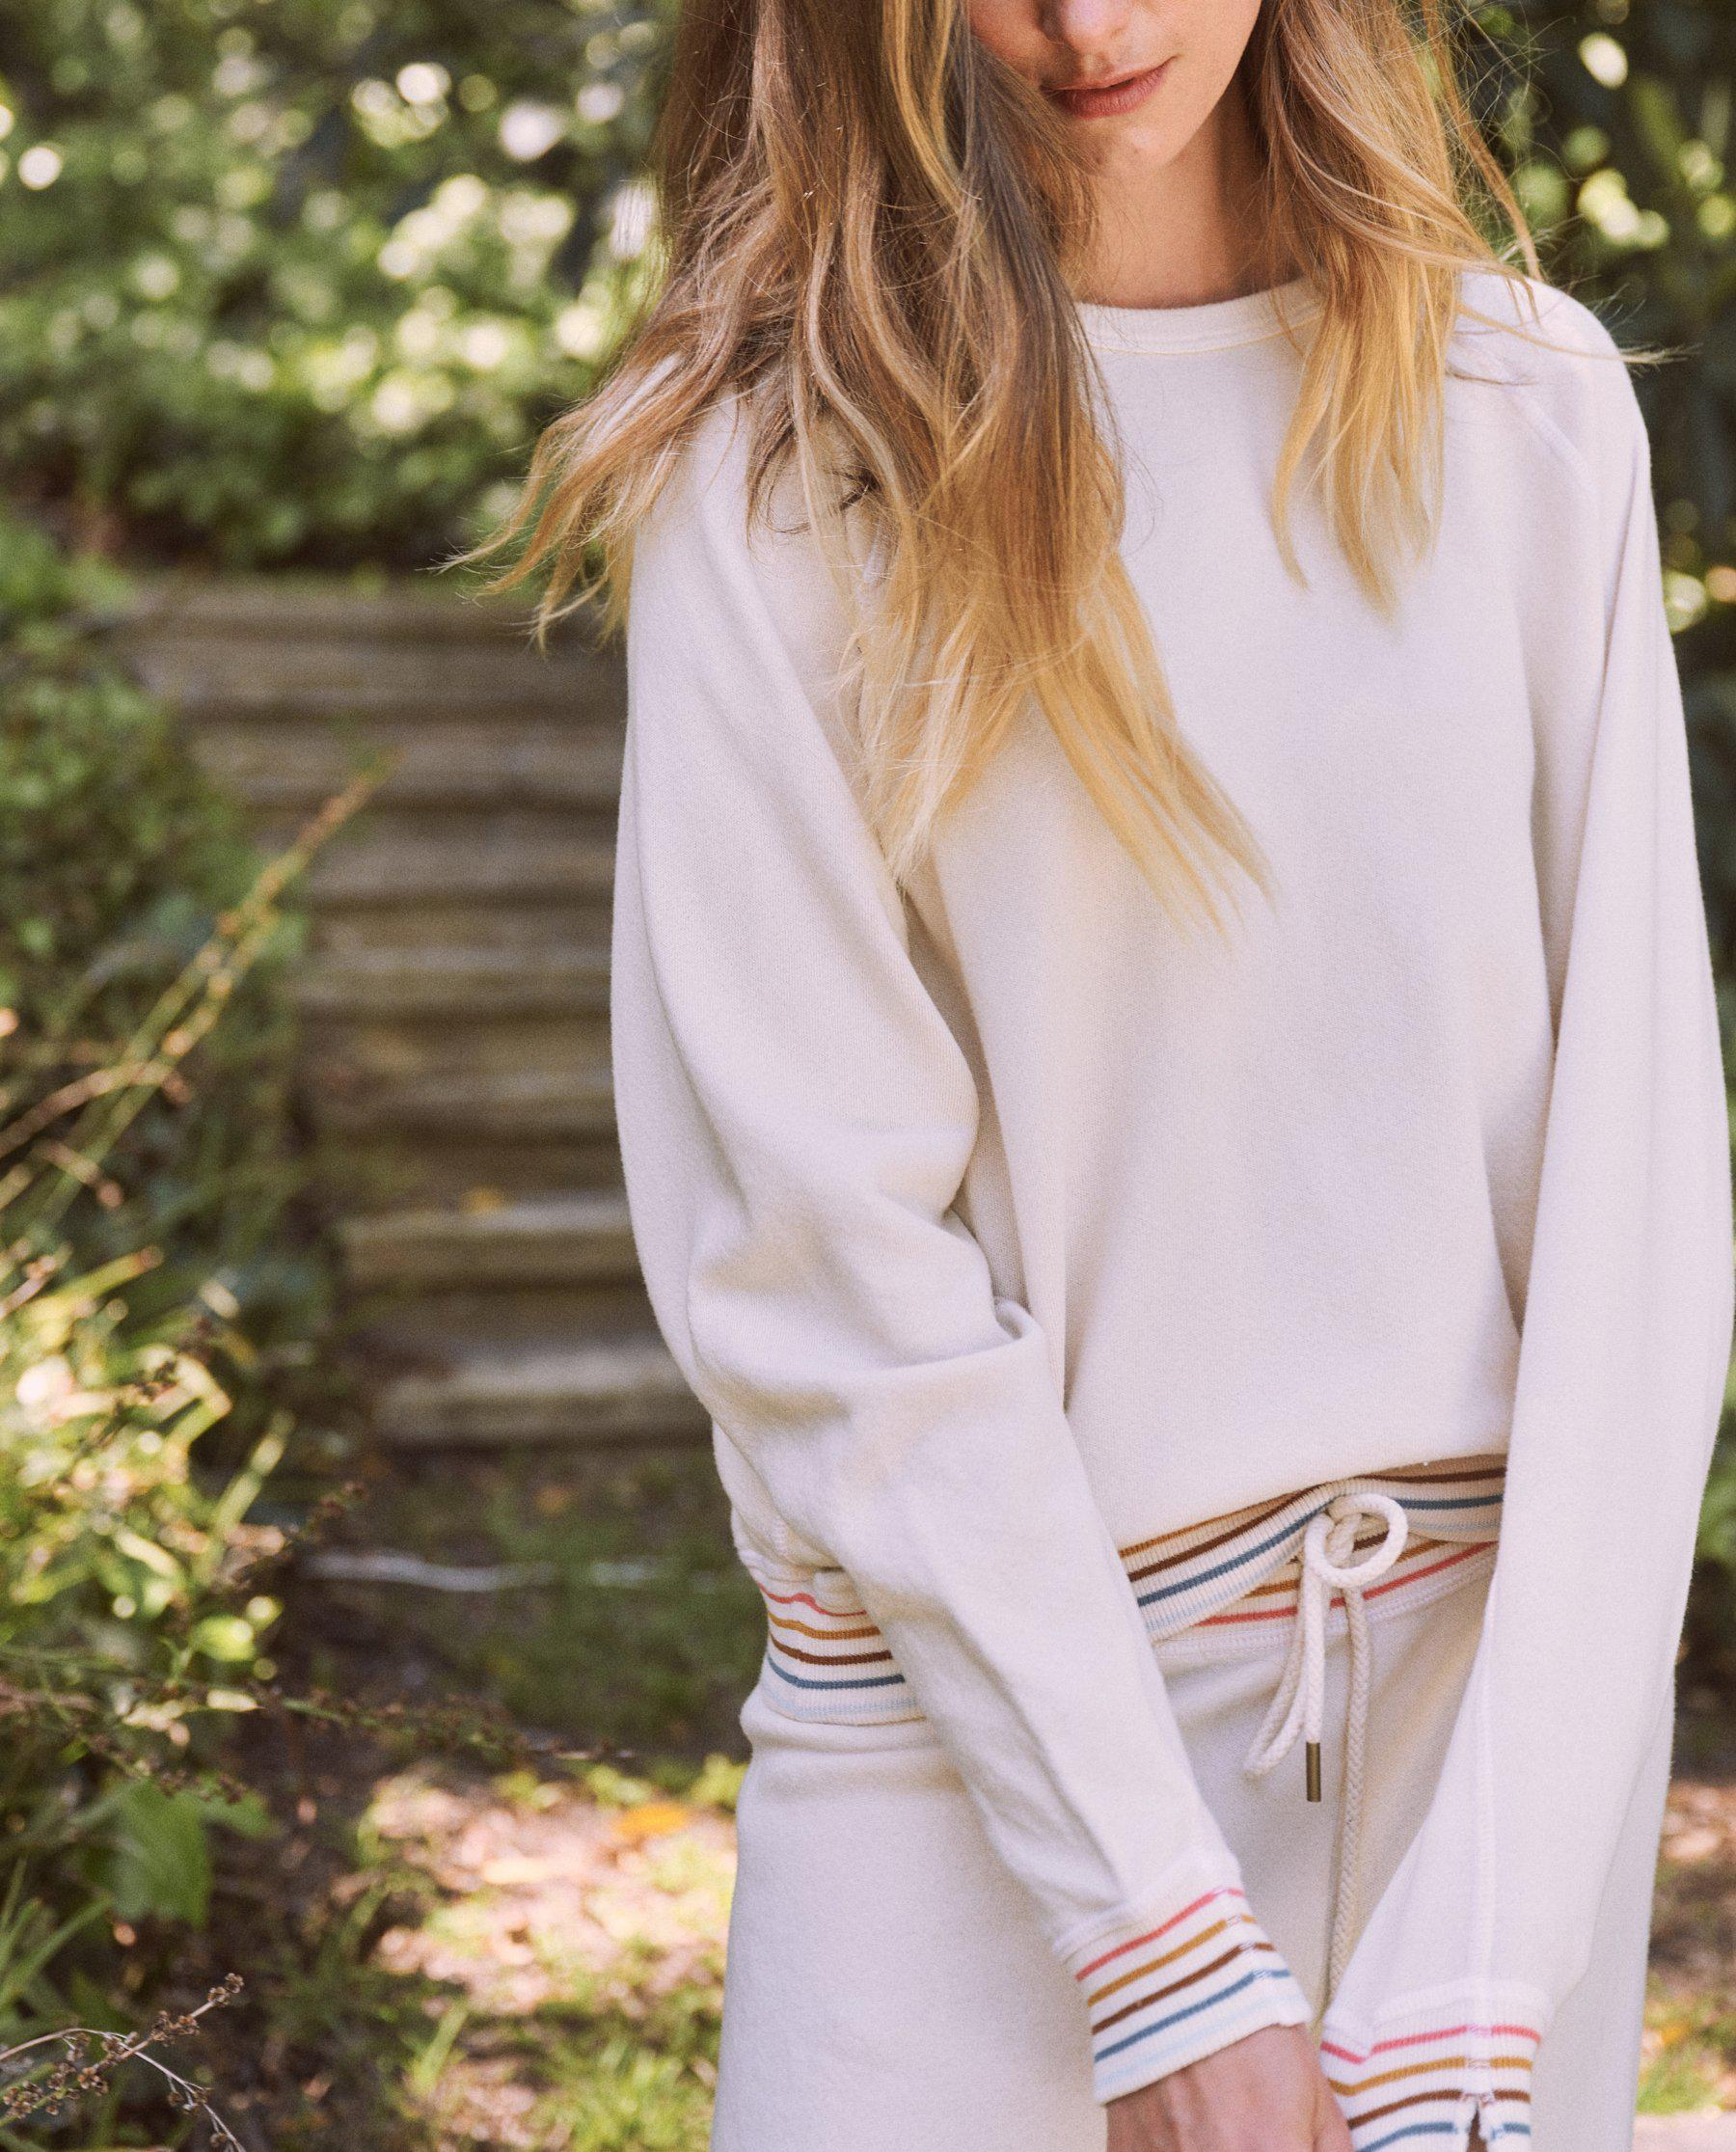 The College Sweatshirt. Novelty -- Washed White with Striped Rib 4